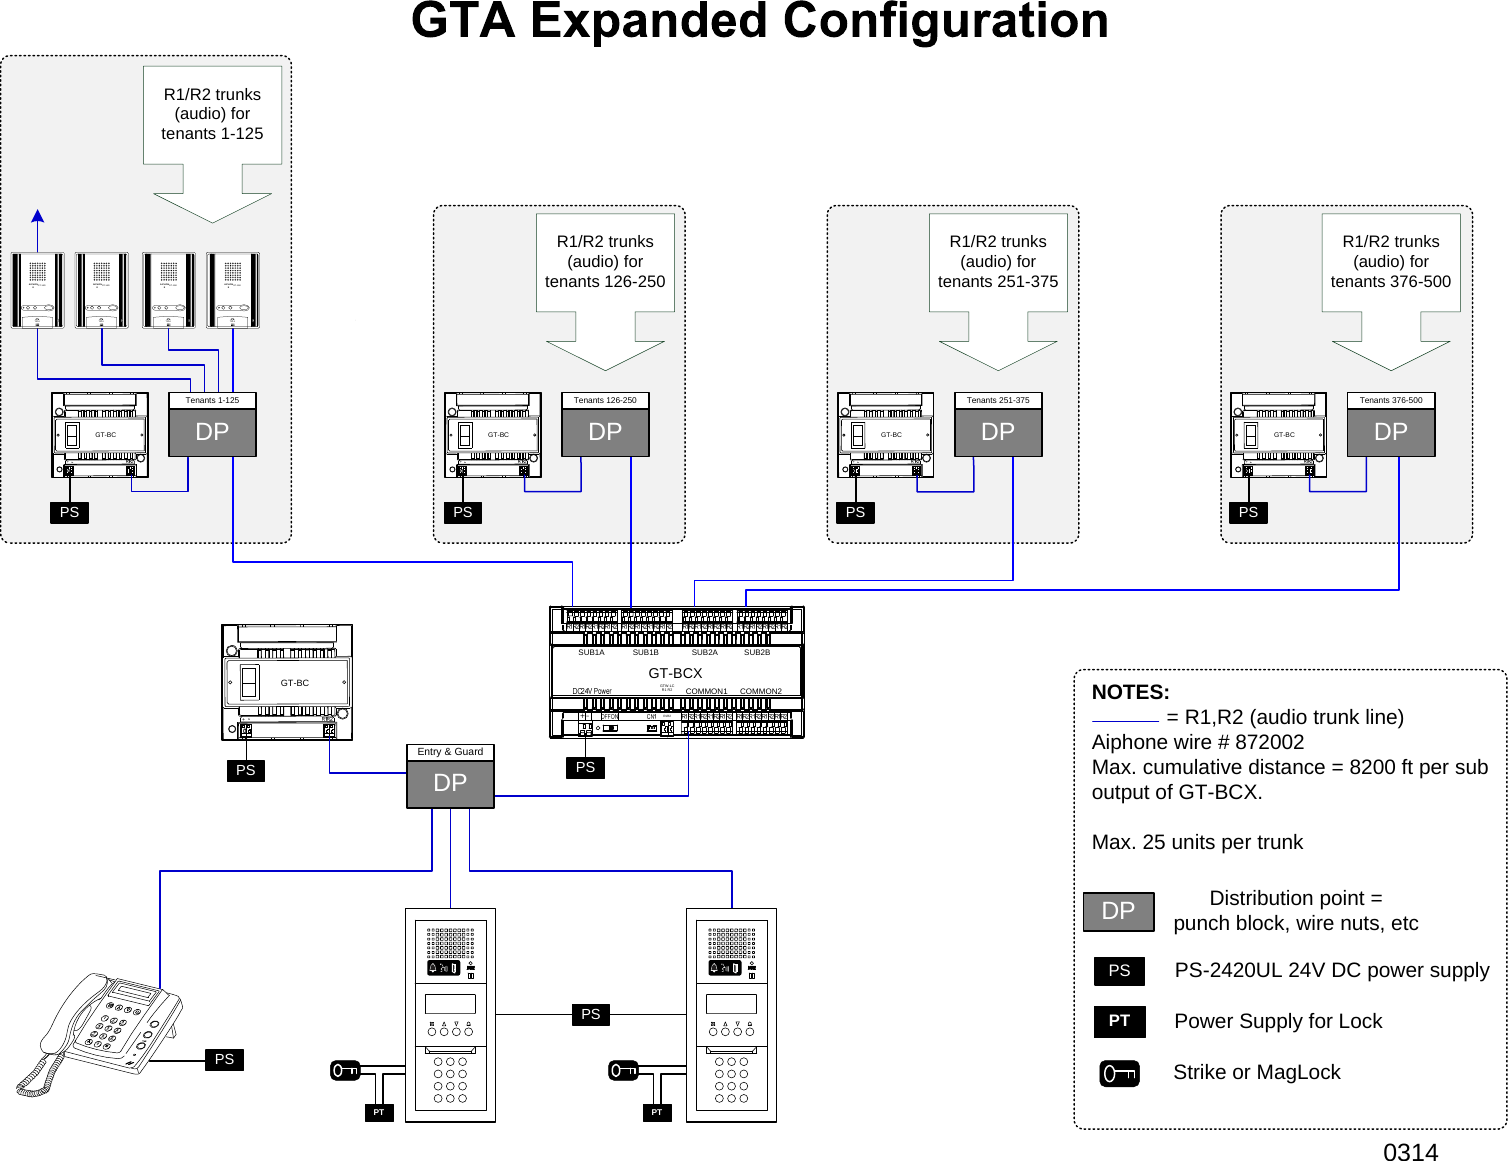 aiphone visio gta expanded wiring diagram configuration. Black Bedroom Furniture Sets. Home Design Ideas